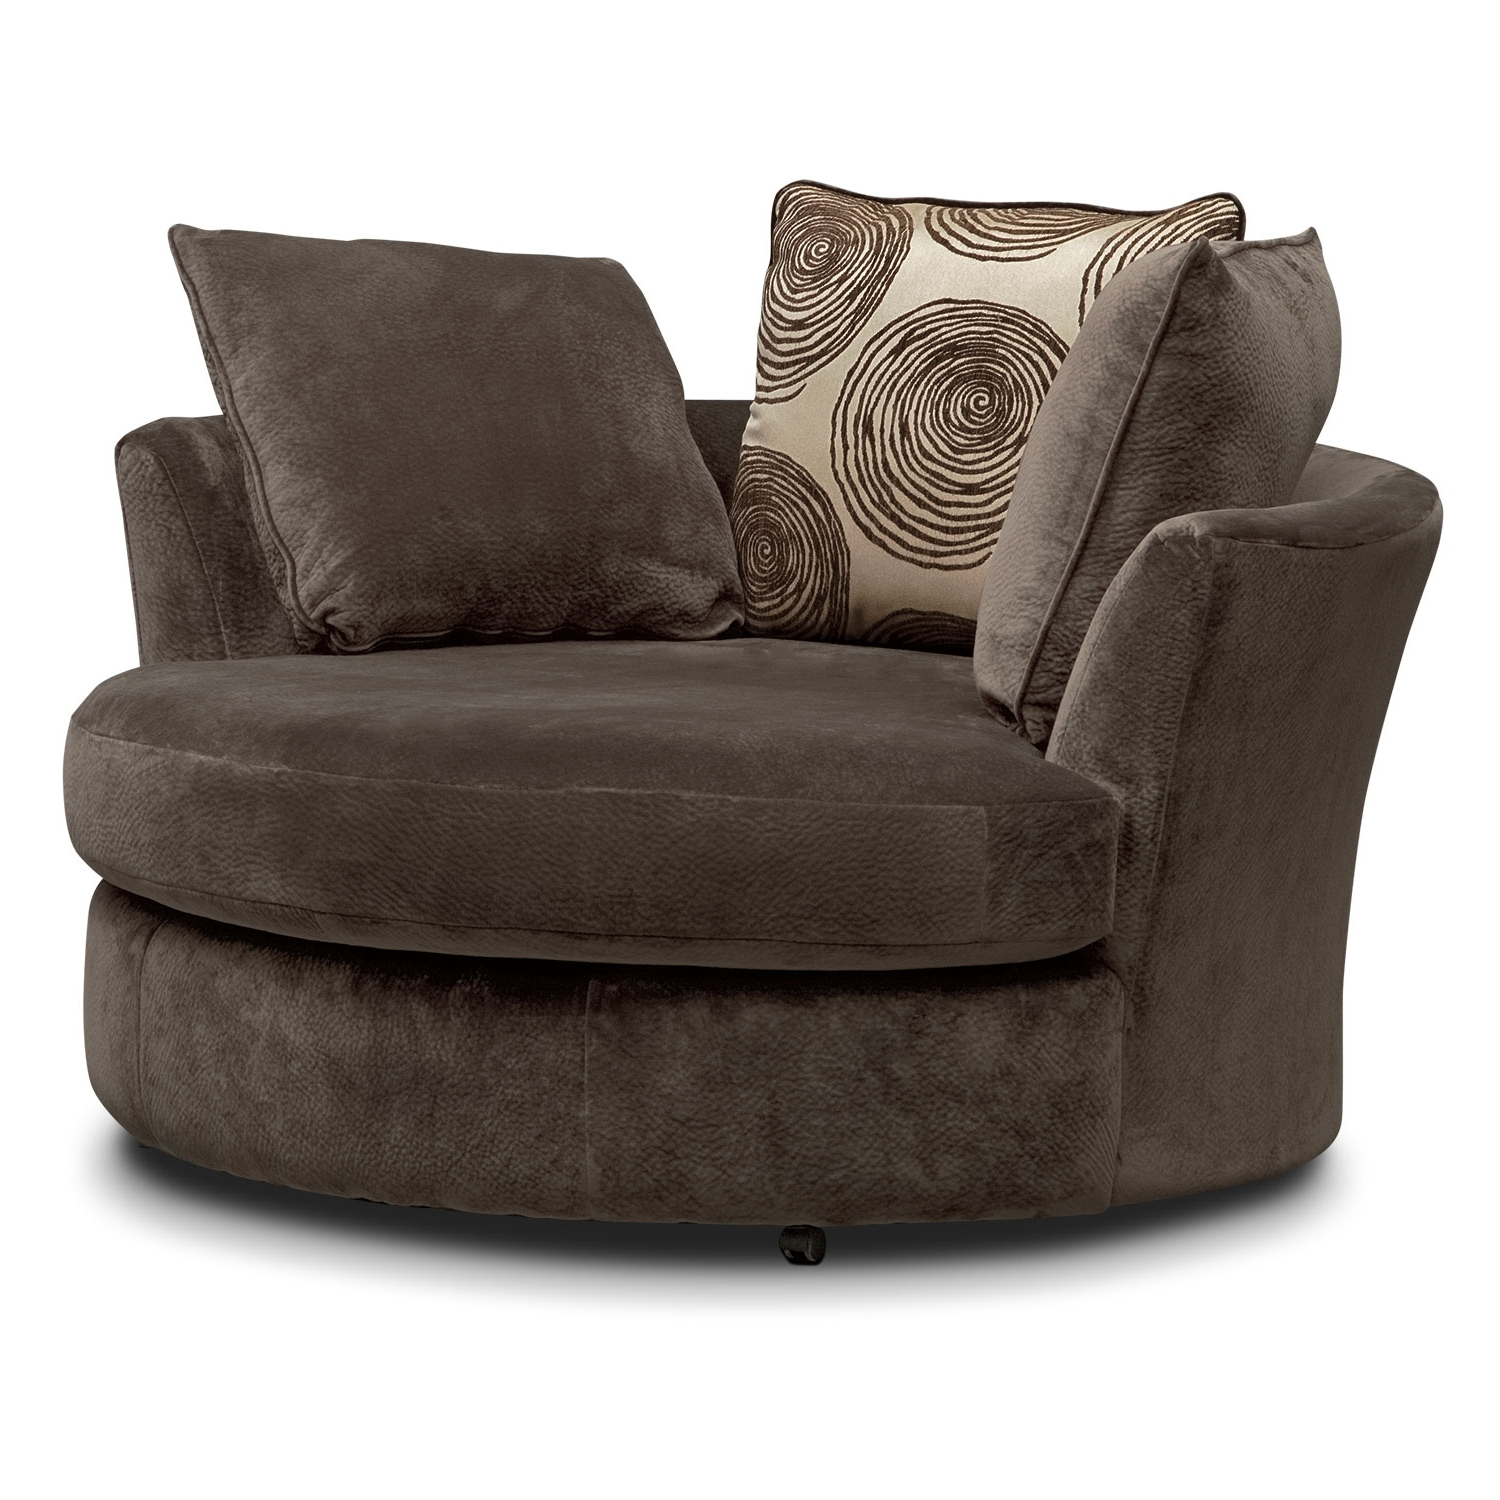 Value City Furniture And Intended For Favorite Spinning Sofa Chairs (View 2 of 15)